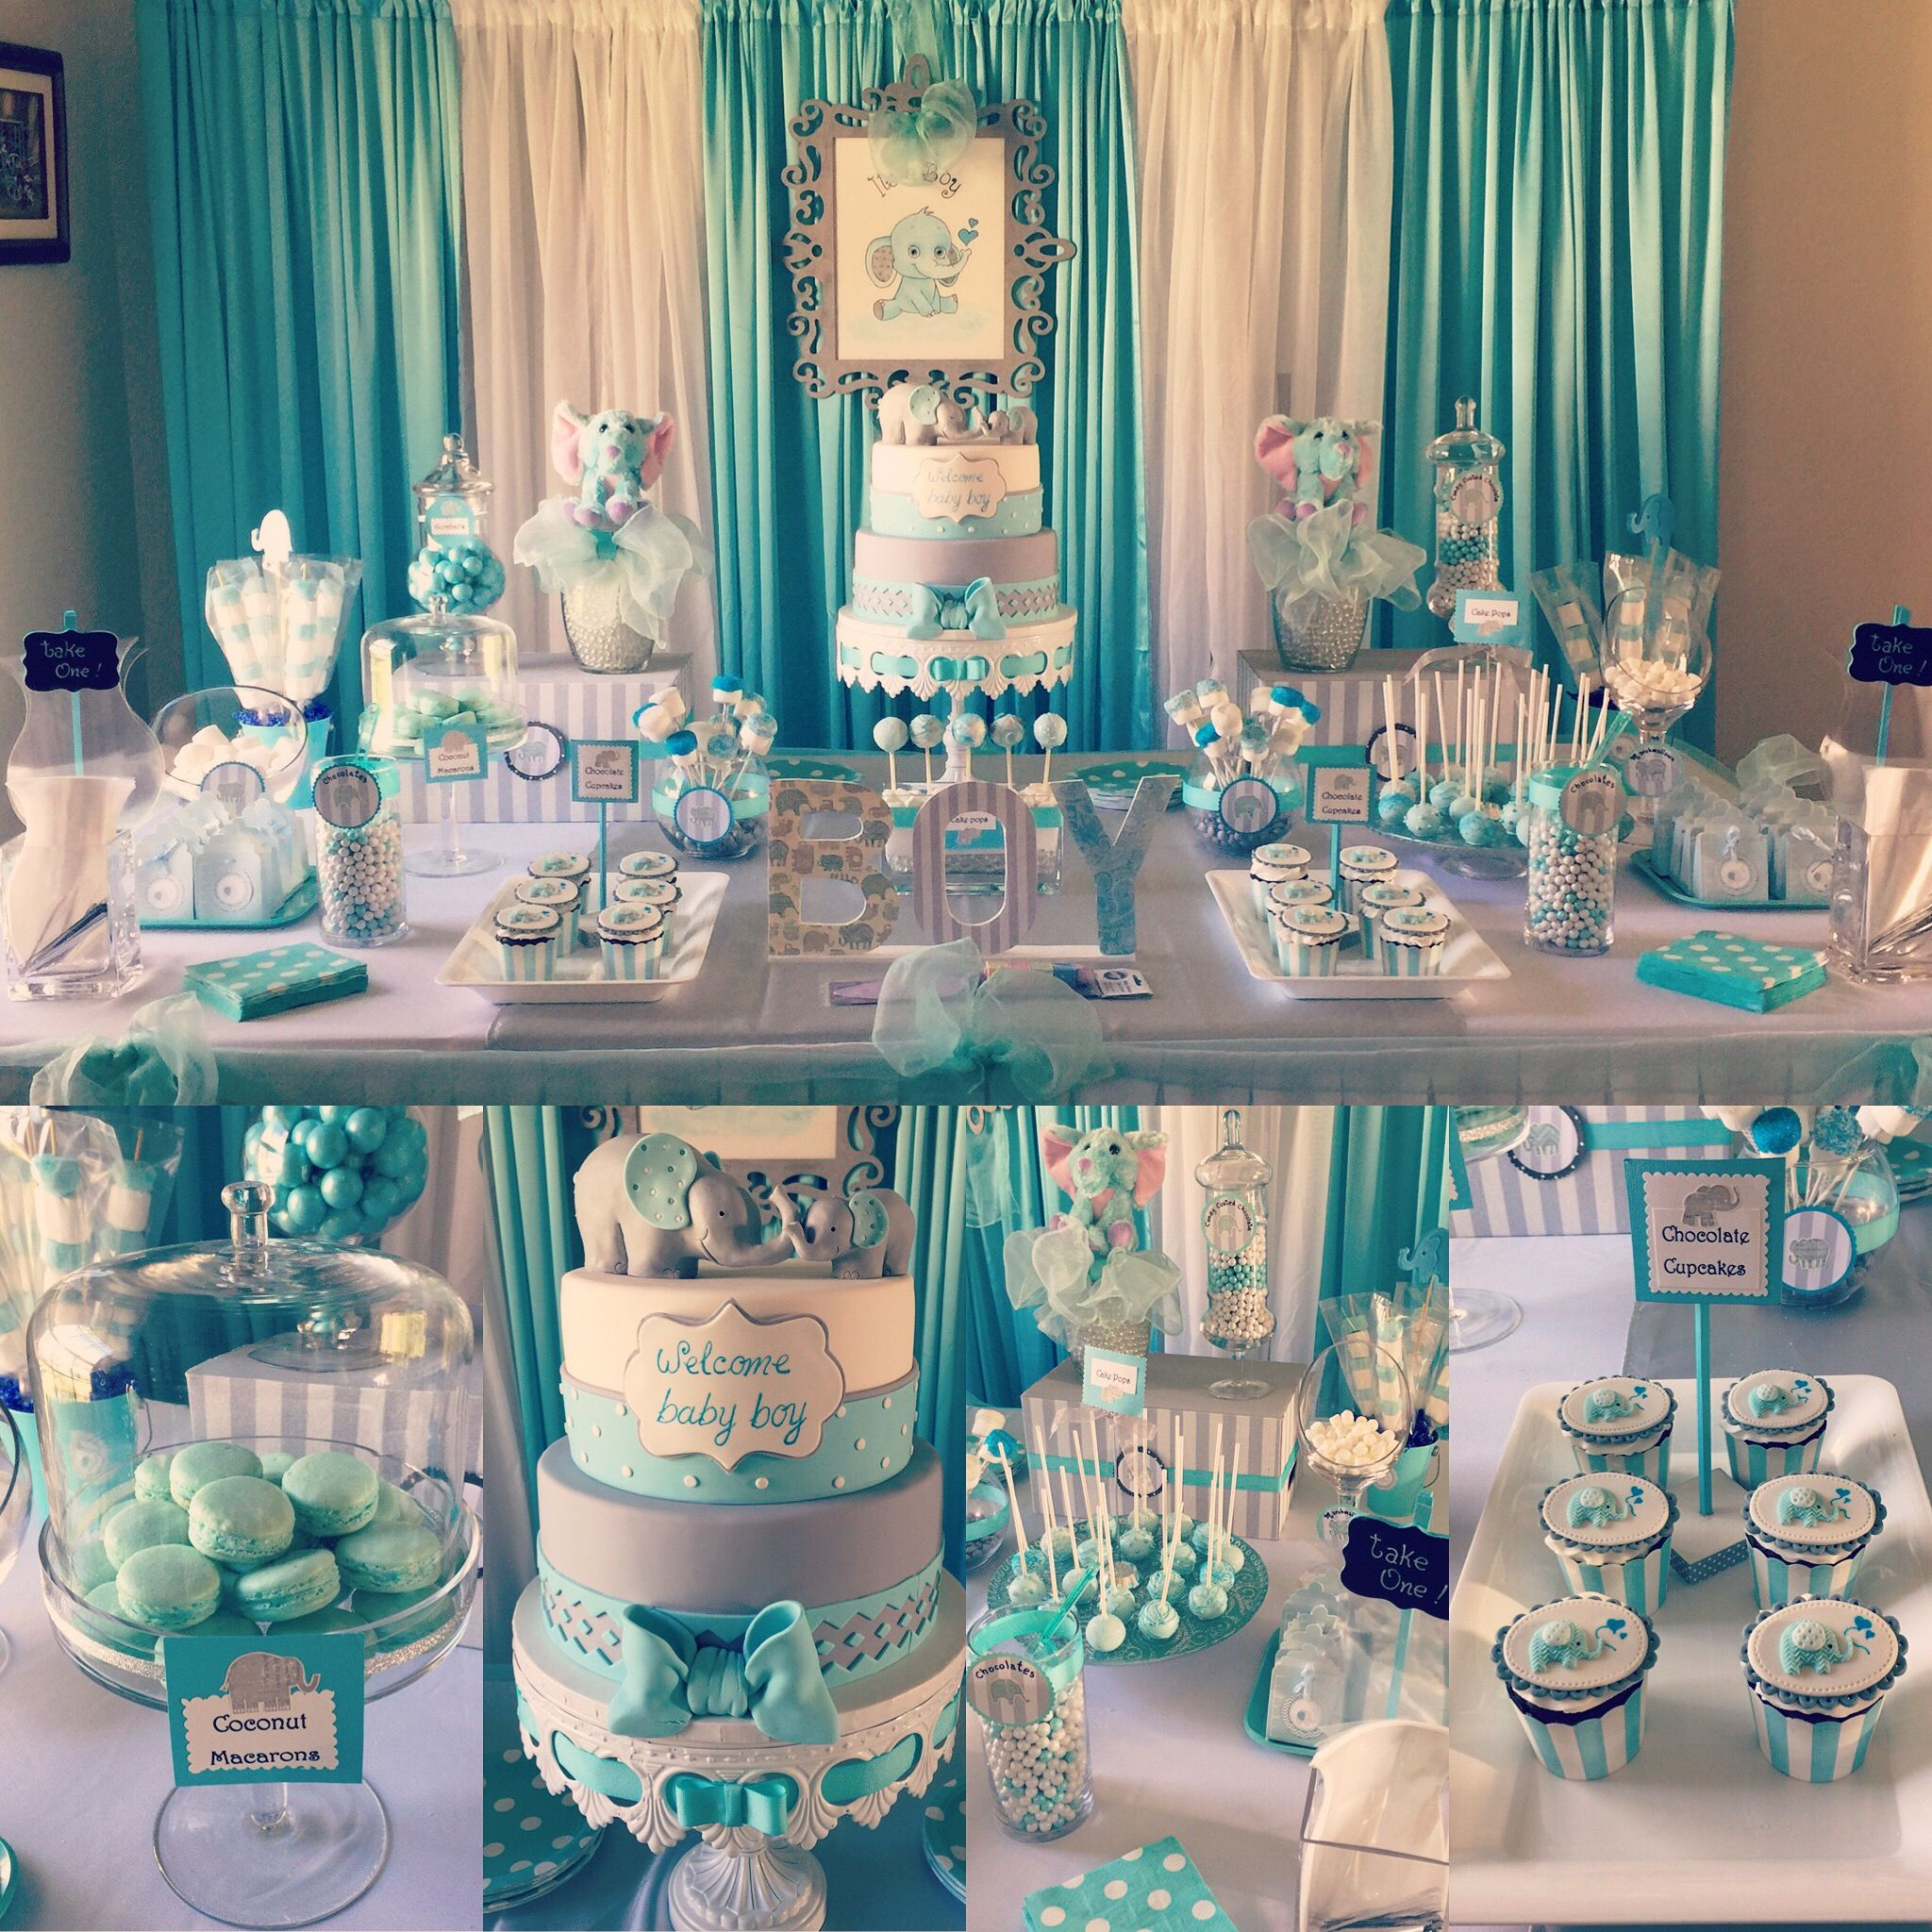 Boy Baby Shower Elephant Theme | Party Decor | Pinterest ...